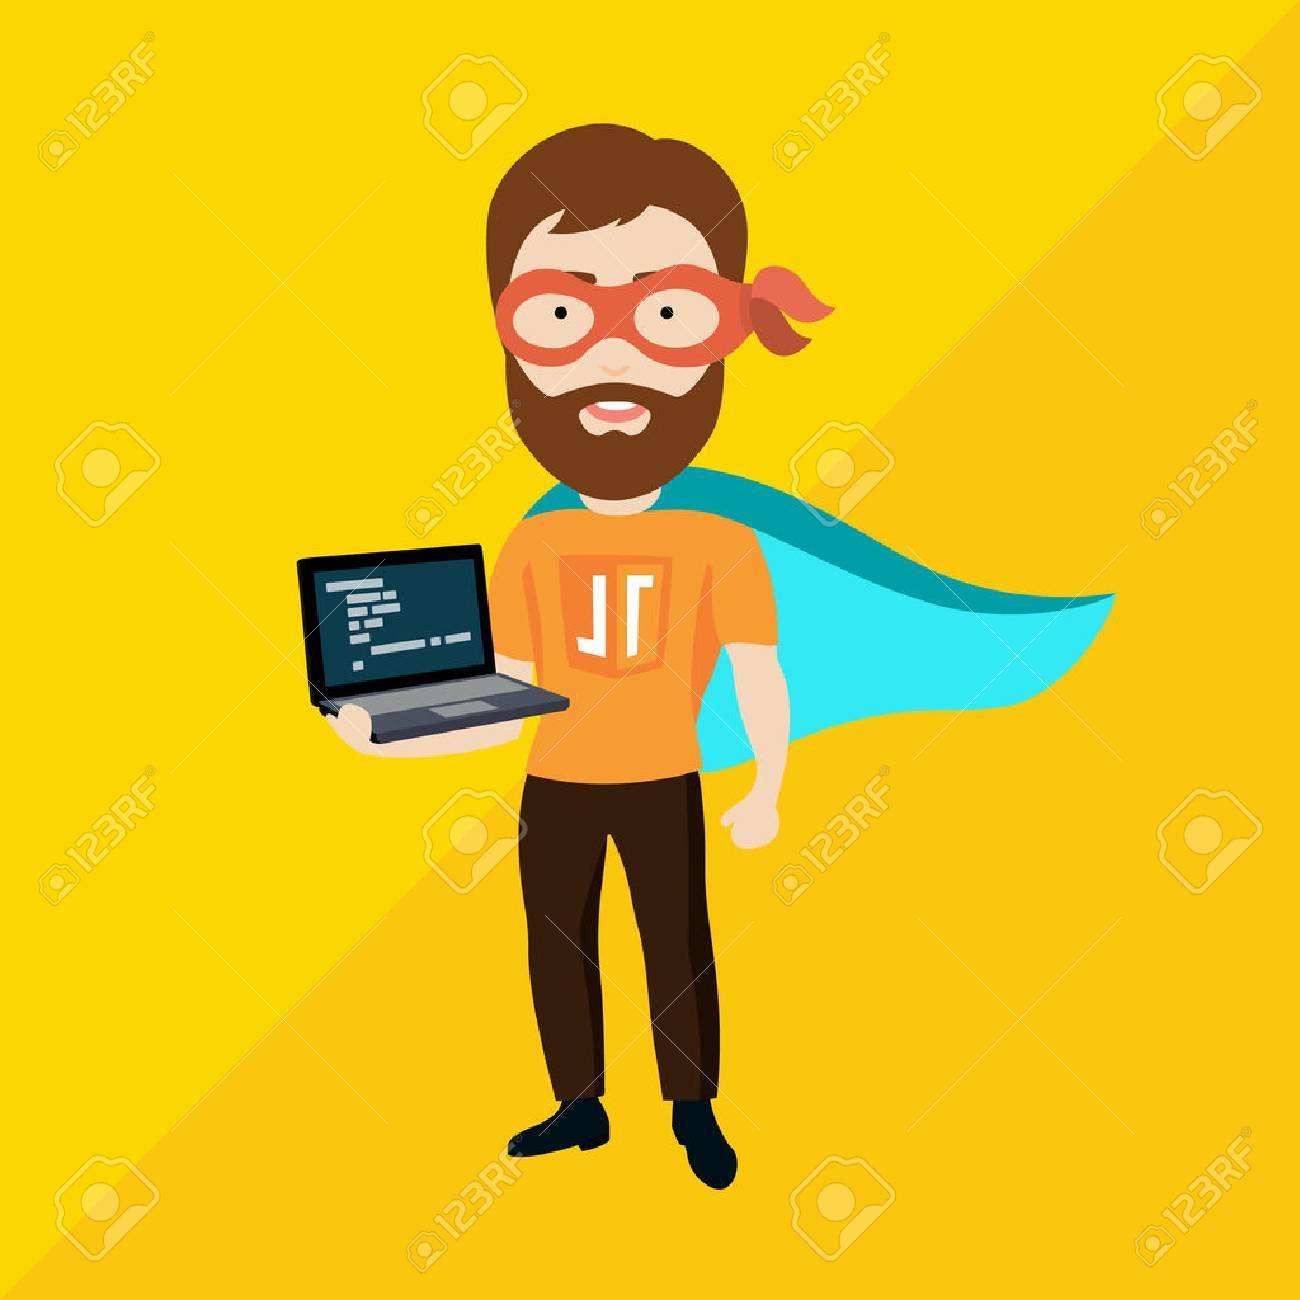 Conceptual Vector Flat Illustration of a Man With Laptop Depicting His Advanced Skills in Programming - 66663291